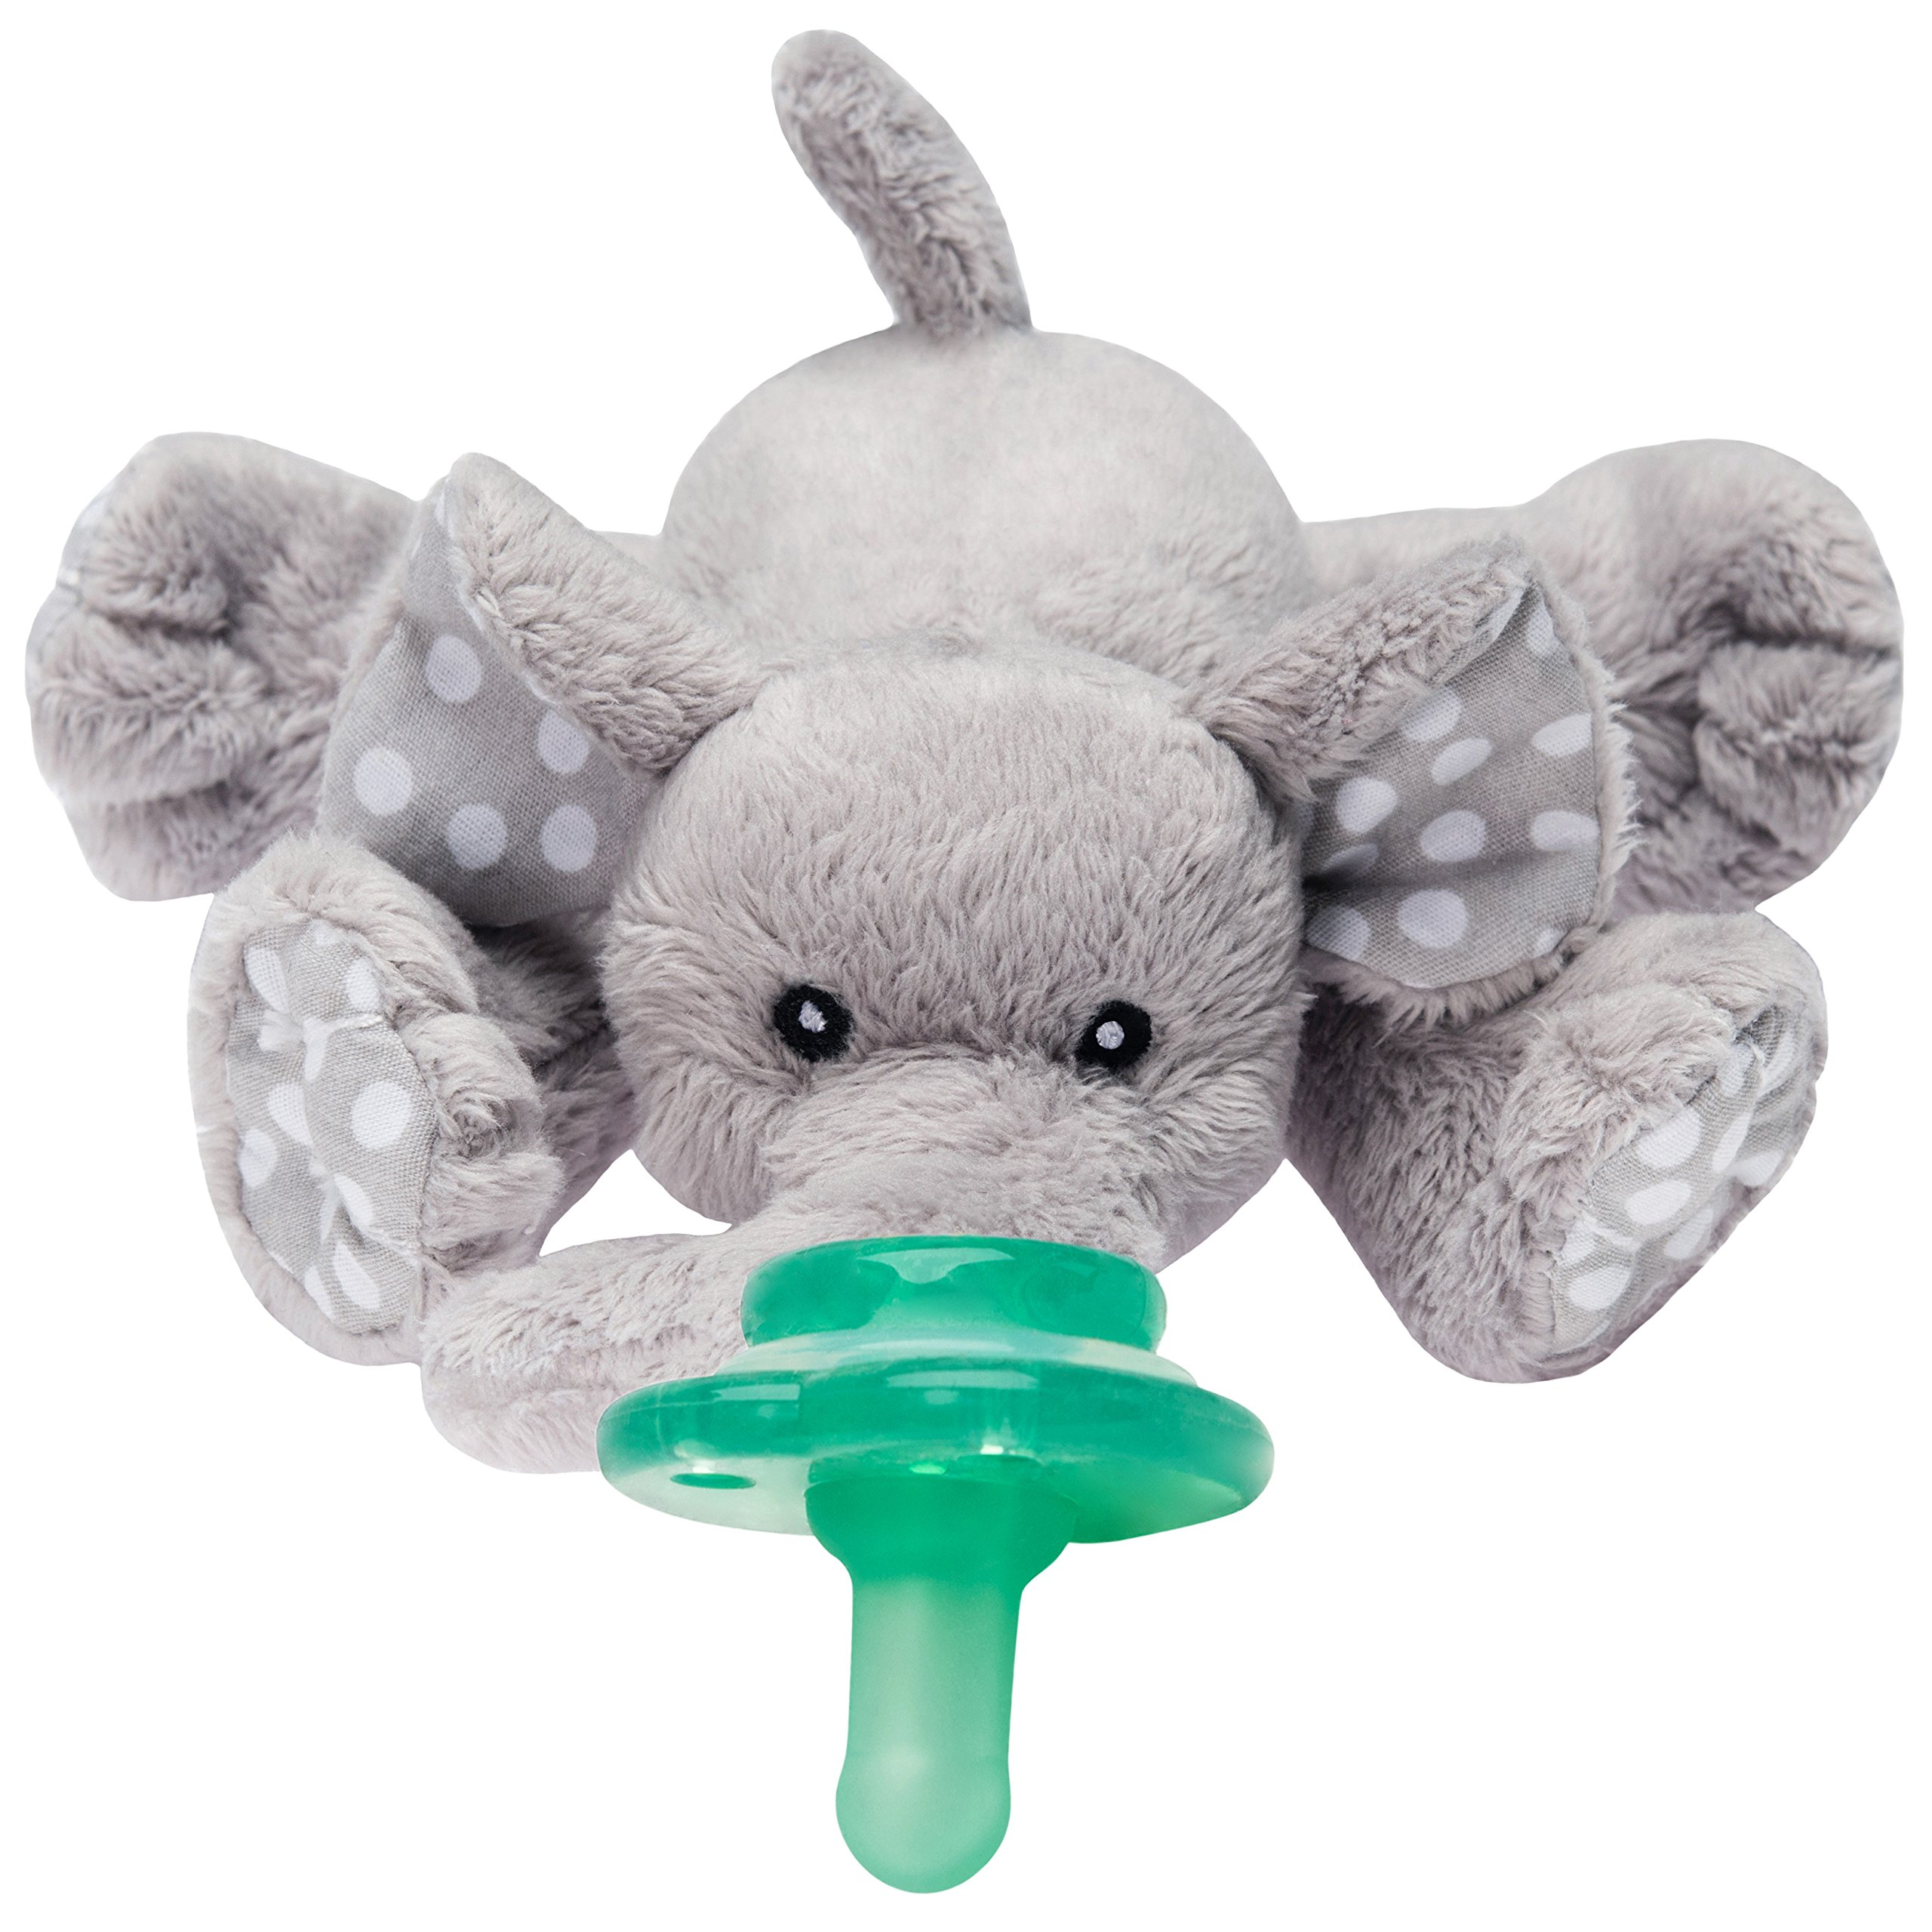 Nookums Paci-Plushies Elephant Buddies - Pacifier Holder (Plush Toy  Includes Detachable Pacifier,